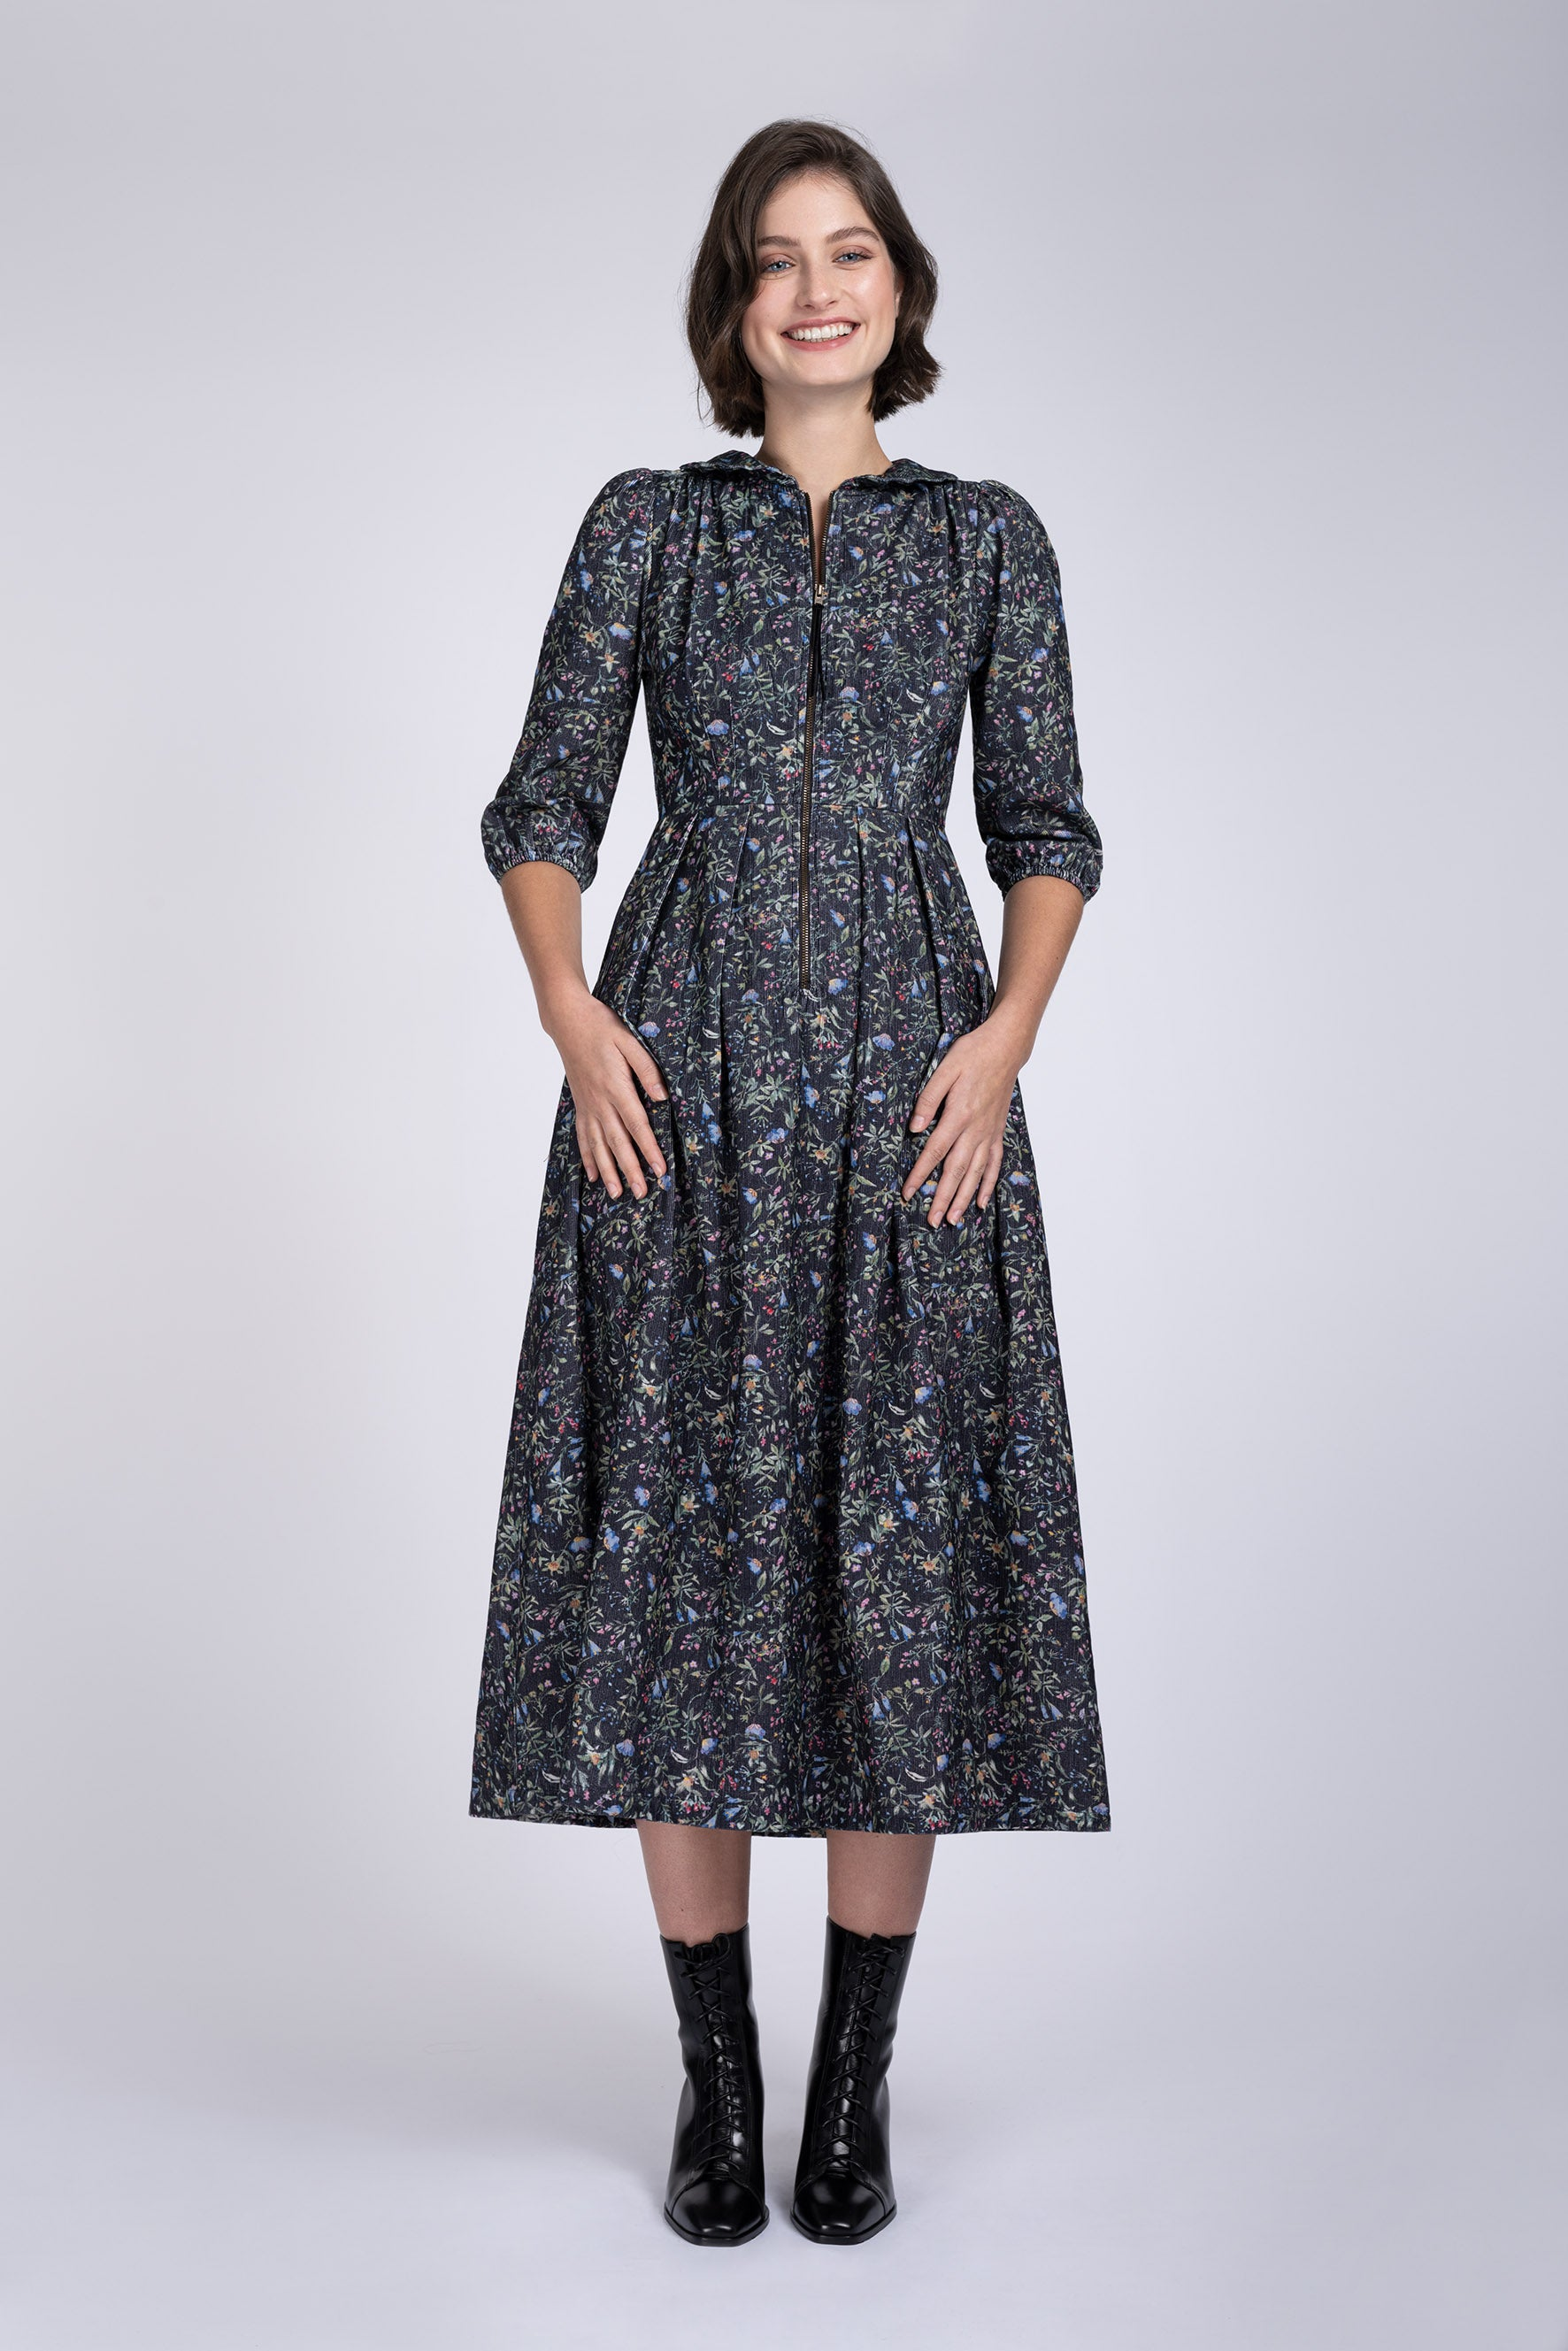 Sonnet Melanical print blueberry cord dress